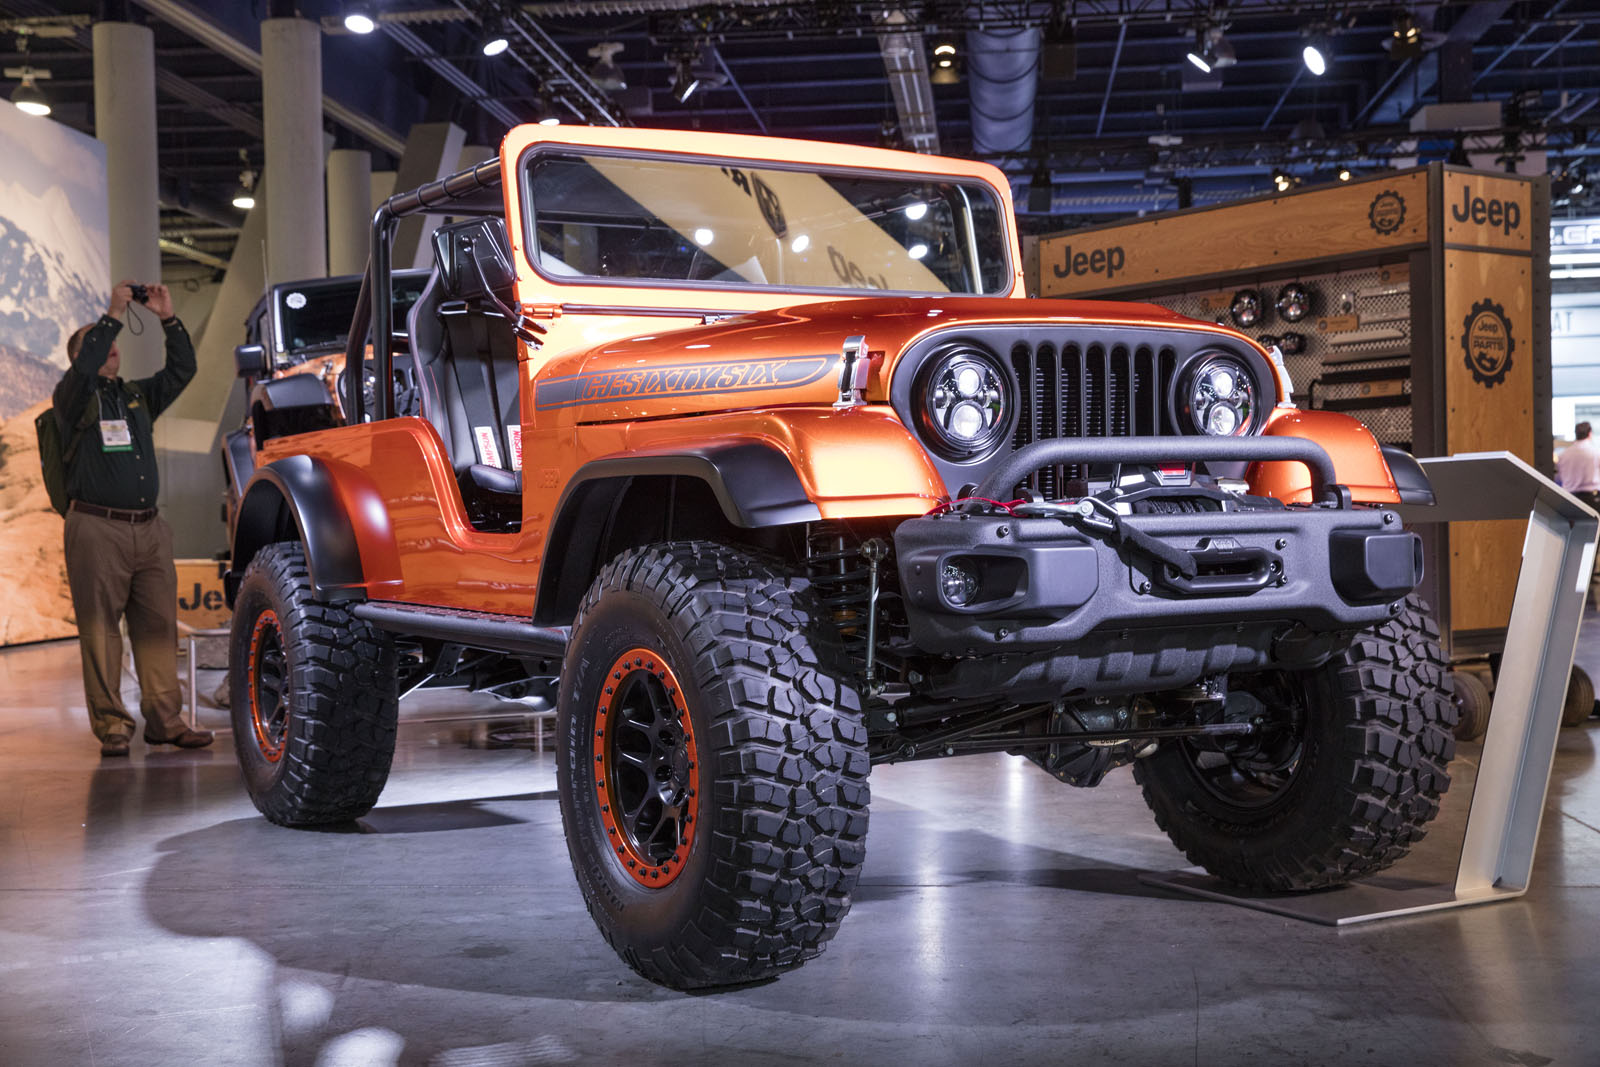 Best Tires For Jeep Wrangler >> Mopar's New Hemi Crate Engine Kit Opens Up A World Of ...